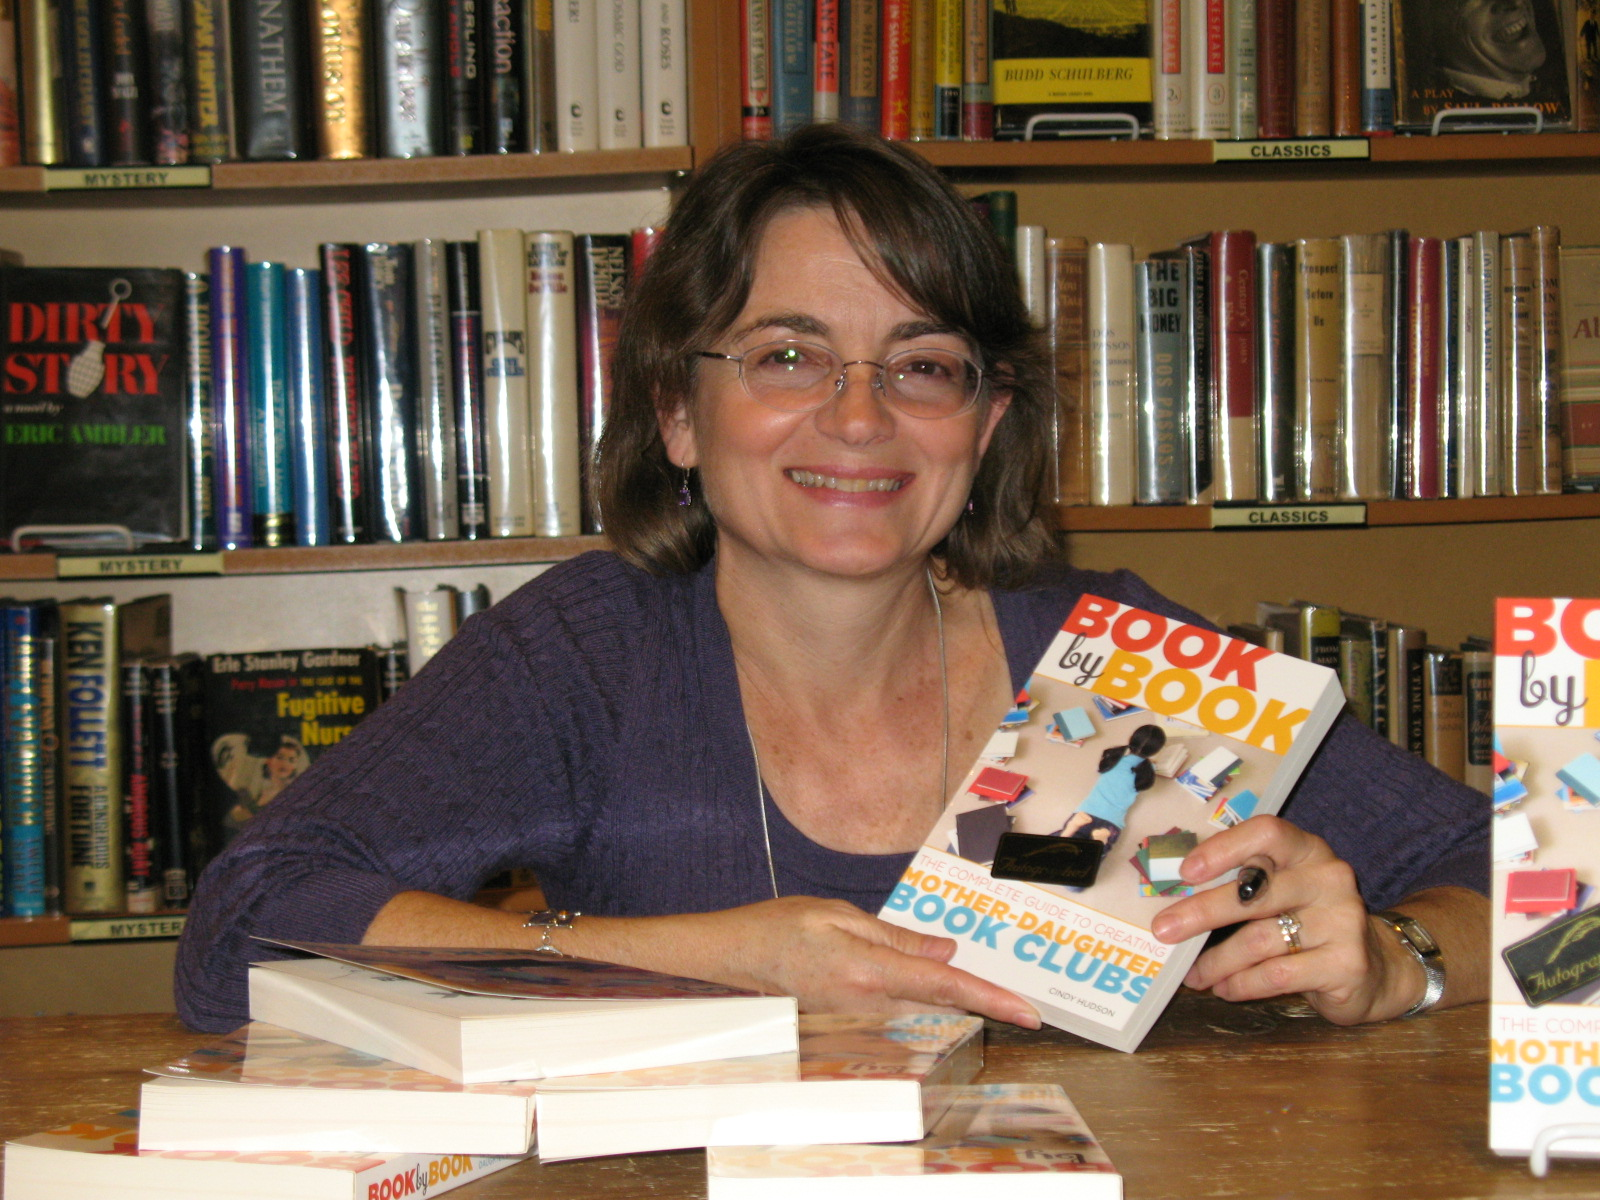 Cindy Hudson at Third Place Books 1 image